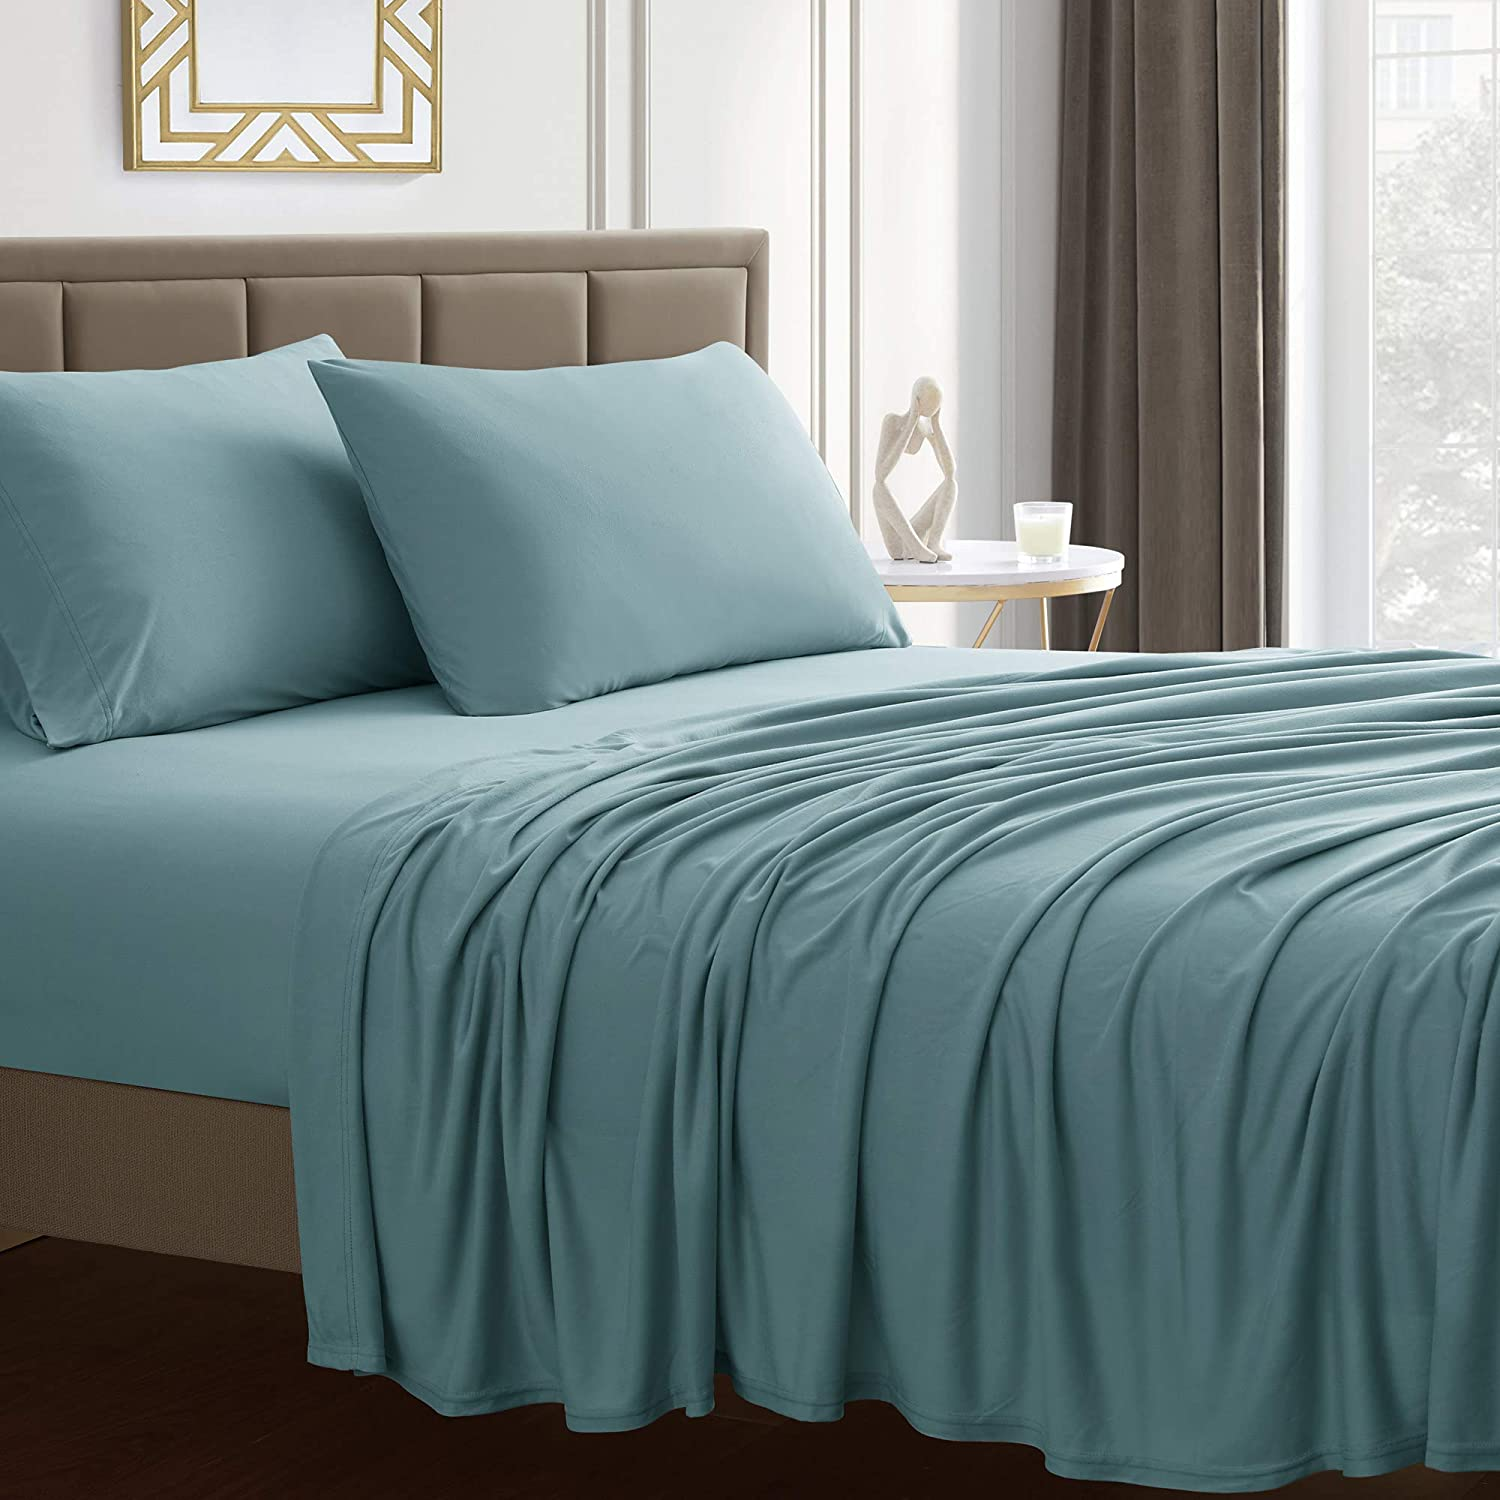 Sweet Home Collection Jersey Knit Microfiber Bed Sheet Set - Premium Soft & Breathable Stretch Deep Pocket Knitted Jersey Sheet Set - Queen, Misty Blue